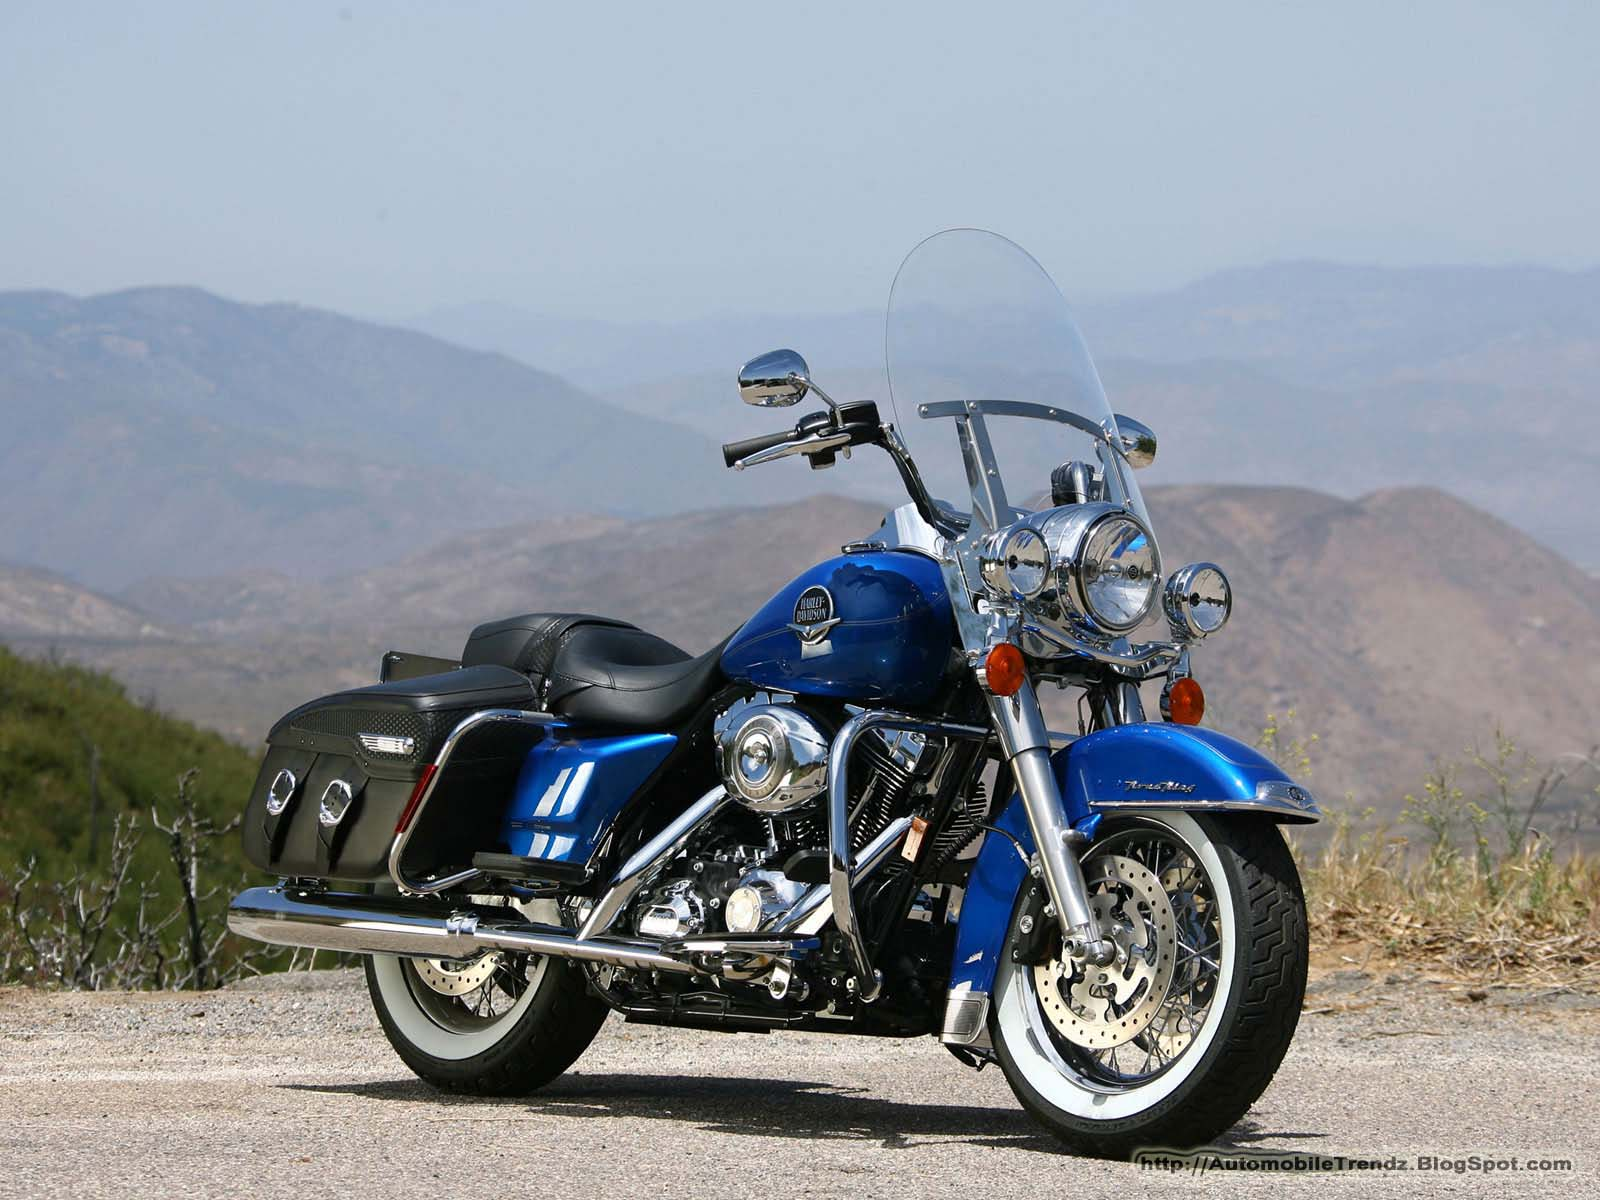 Automobile Trendz: Harley Davidson Road King